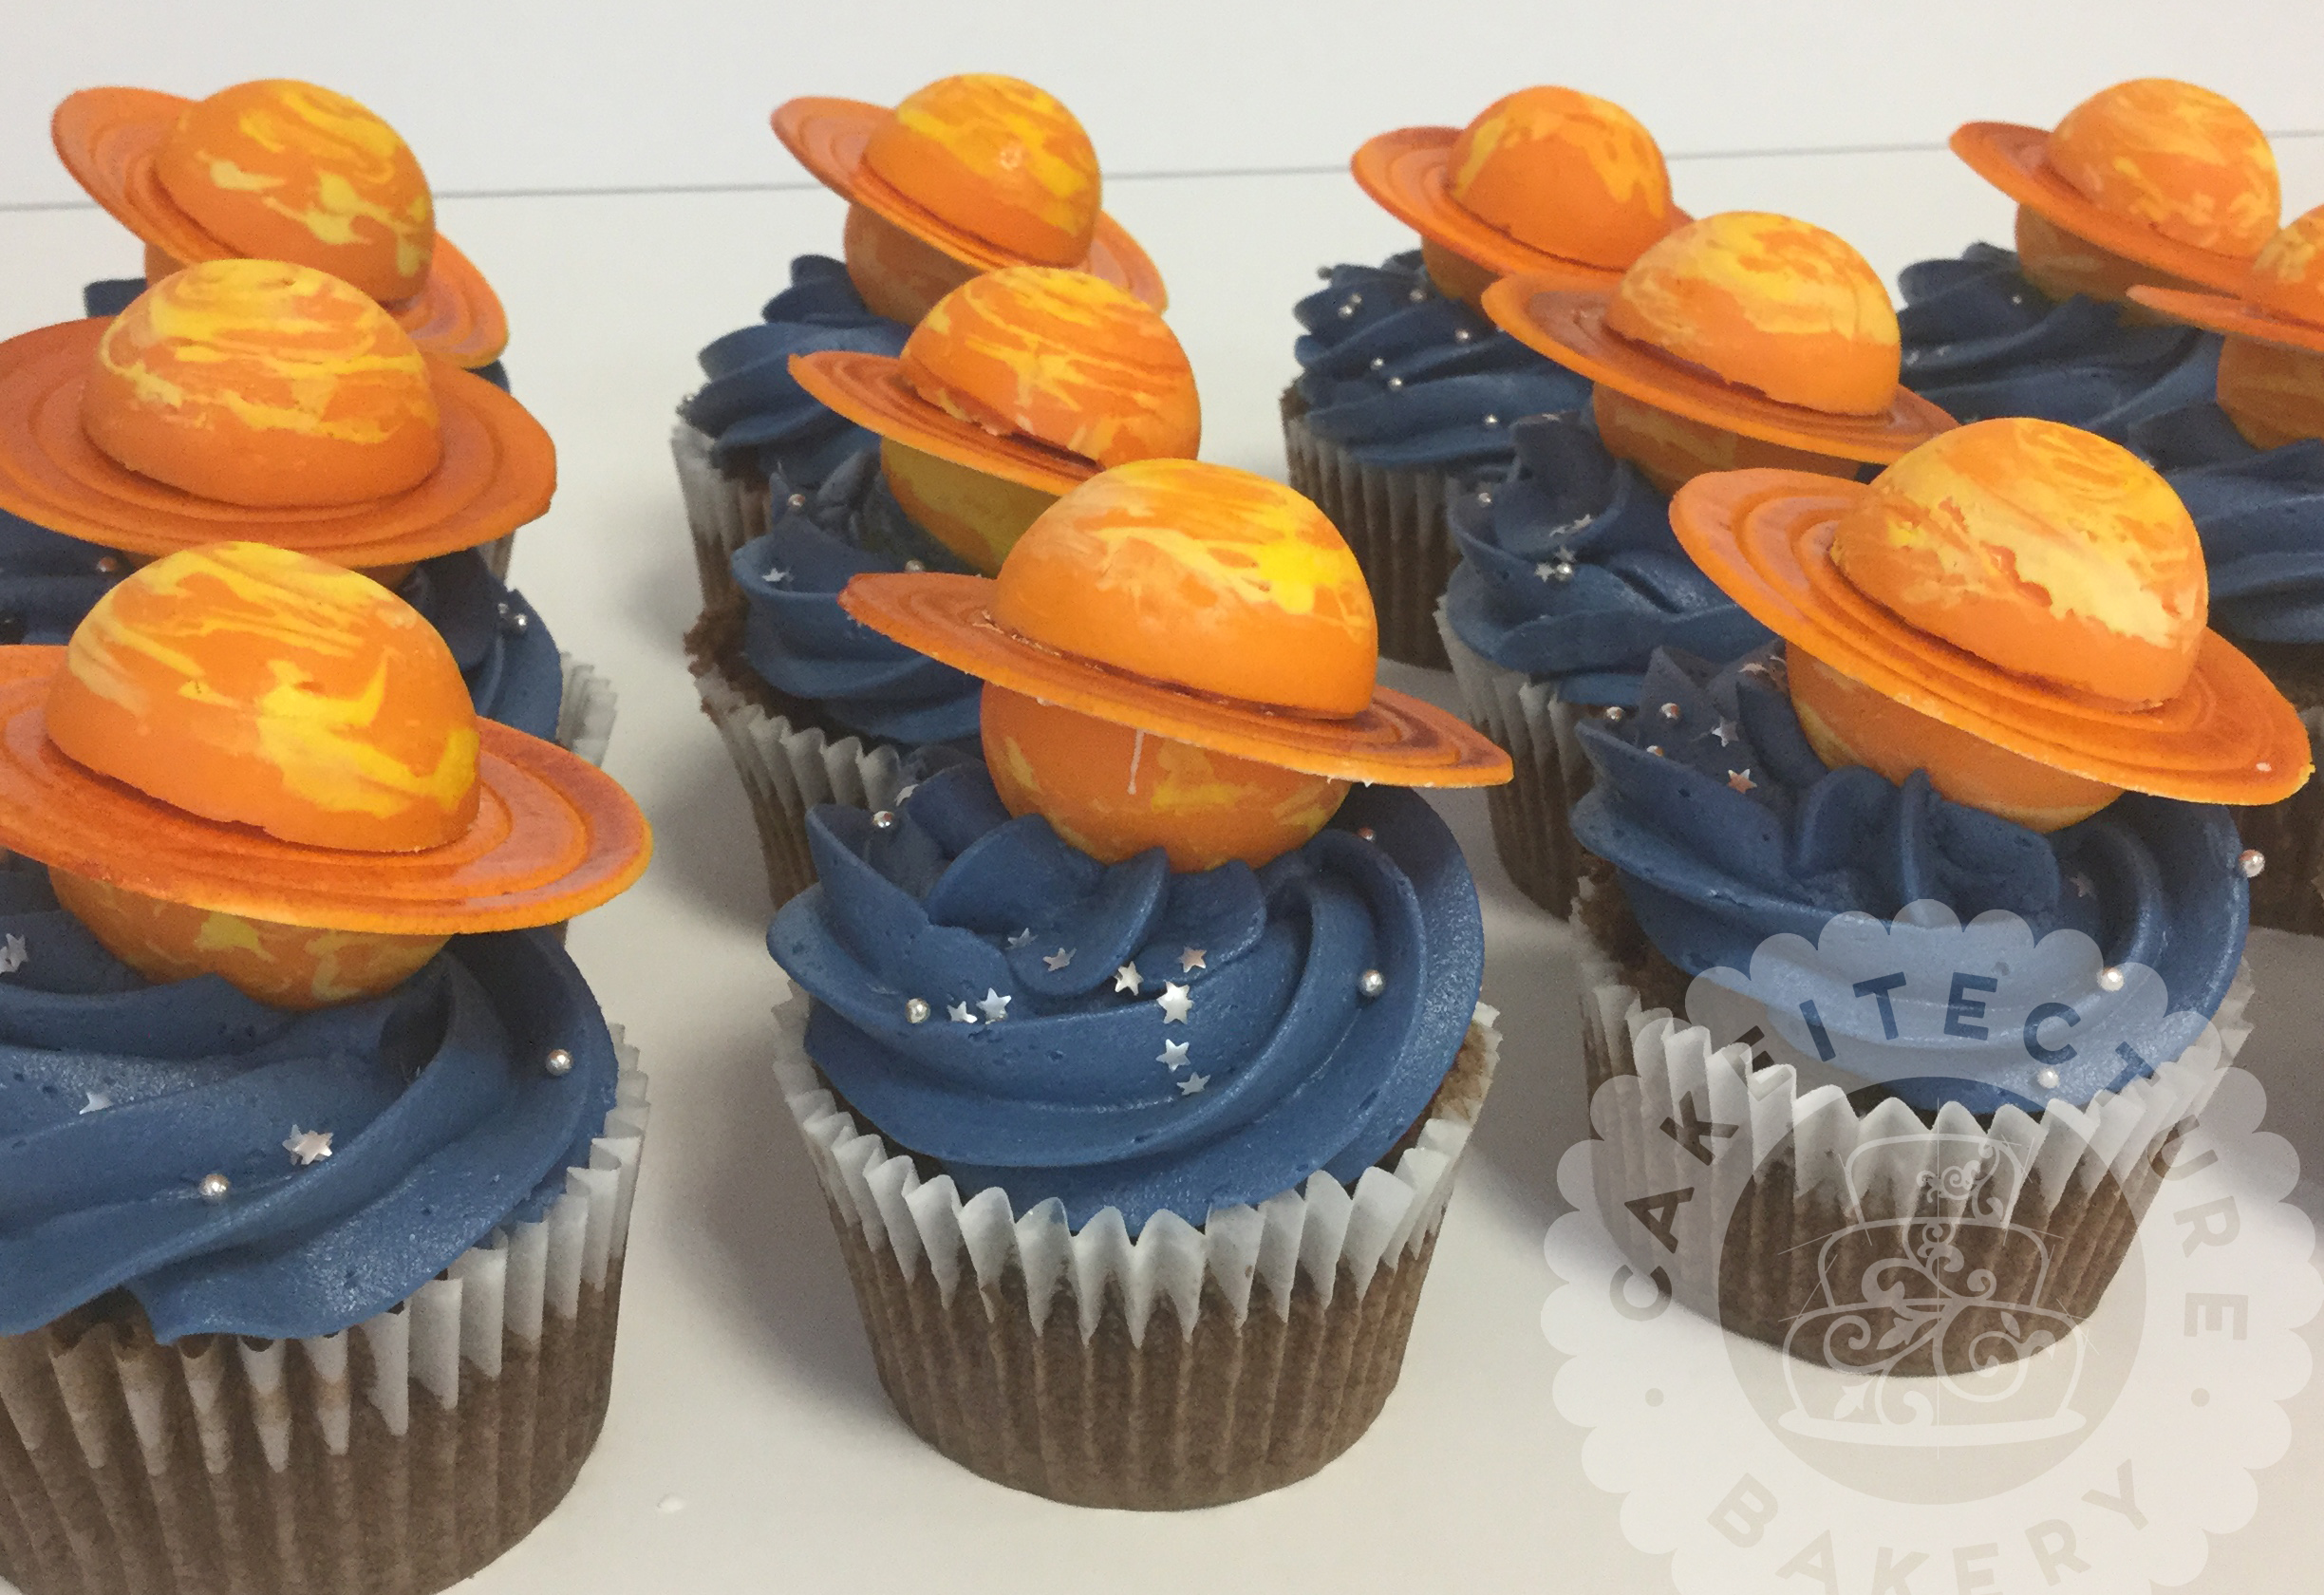 Cakeitecture Bakery 1702 space cupcakes.jpg